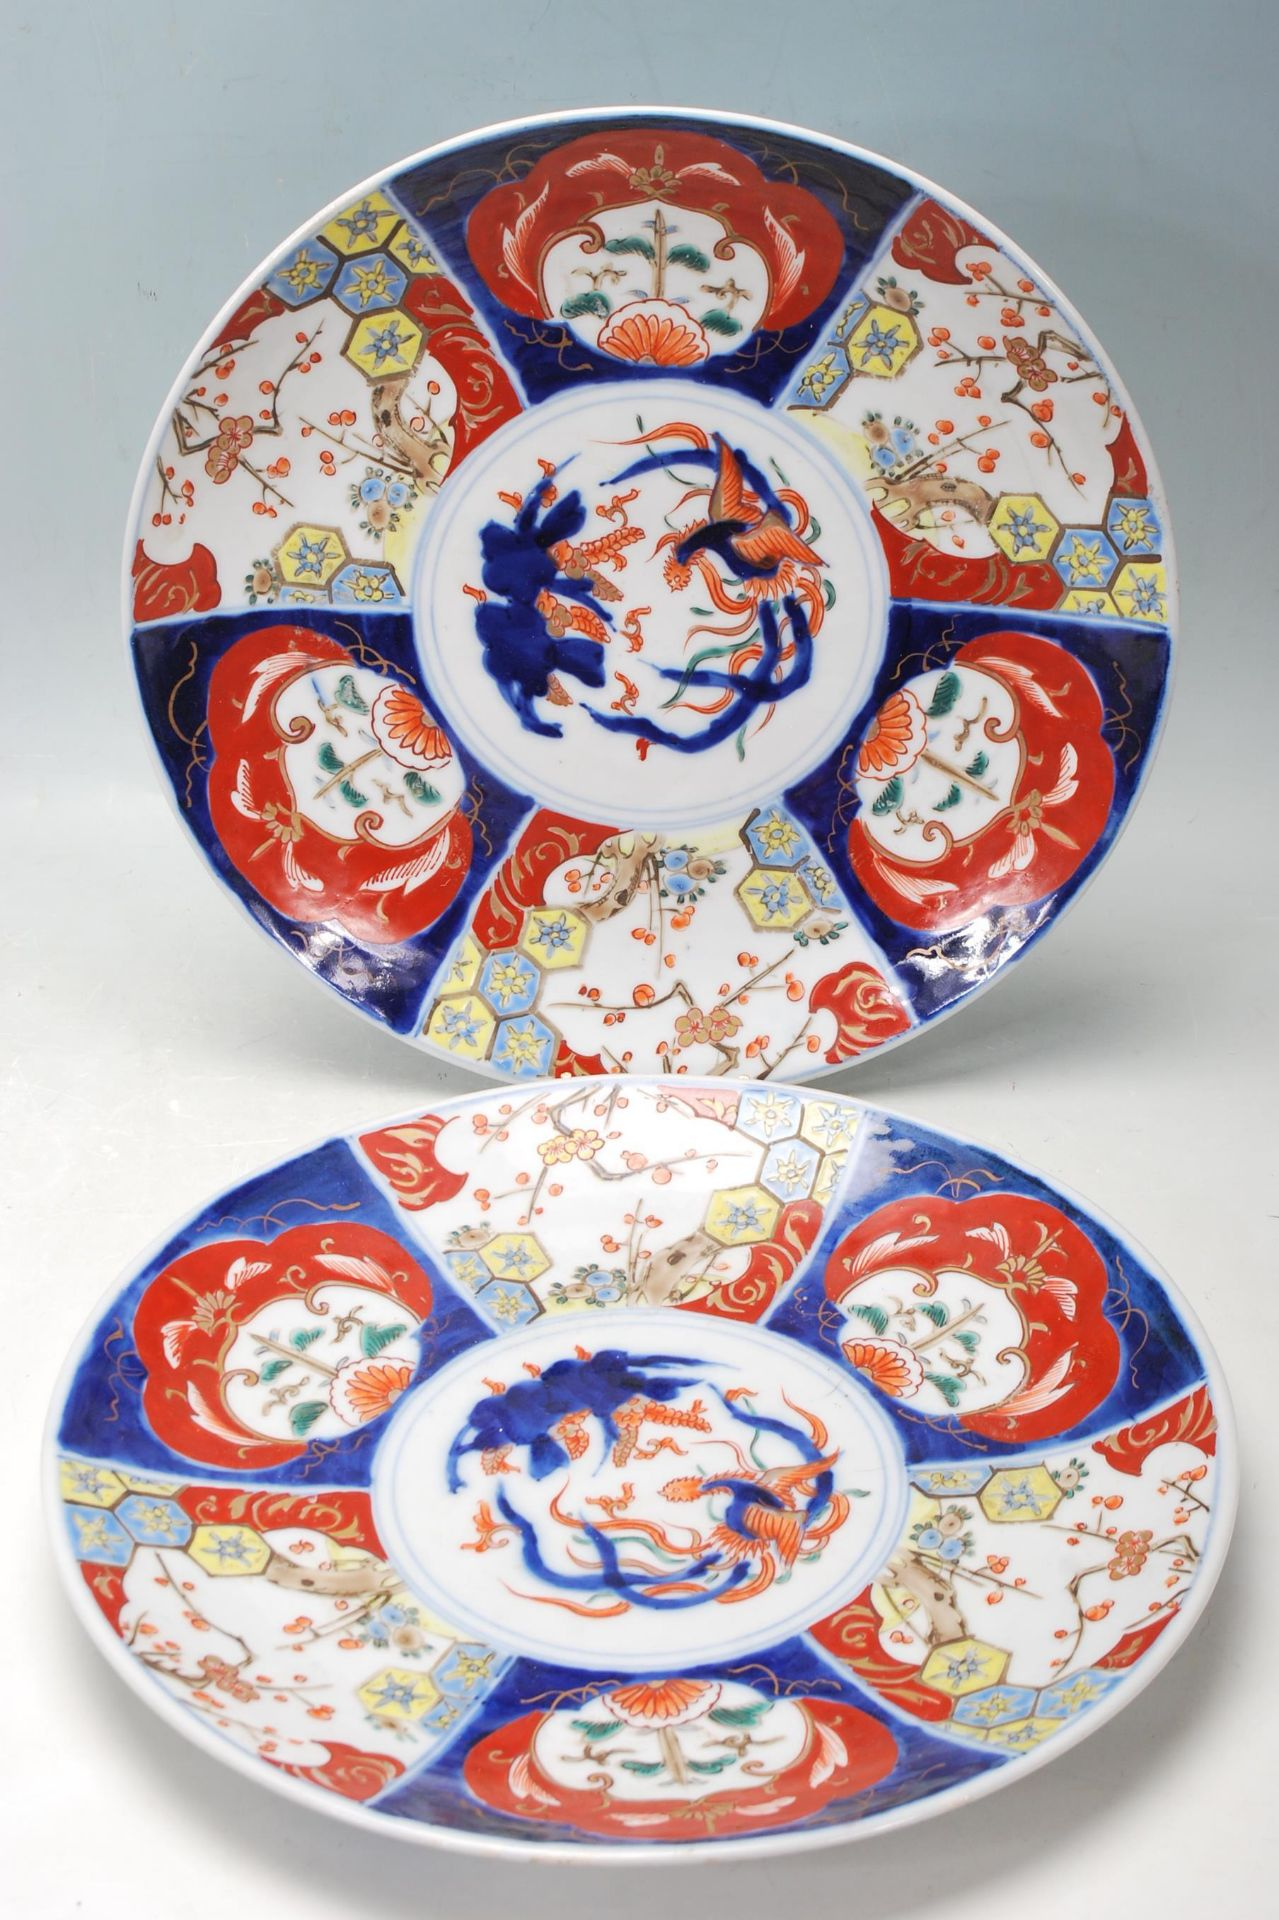 TWO 19TH CETURY 20TH CETURY CHINESE ORIENTAL CHARGERS